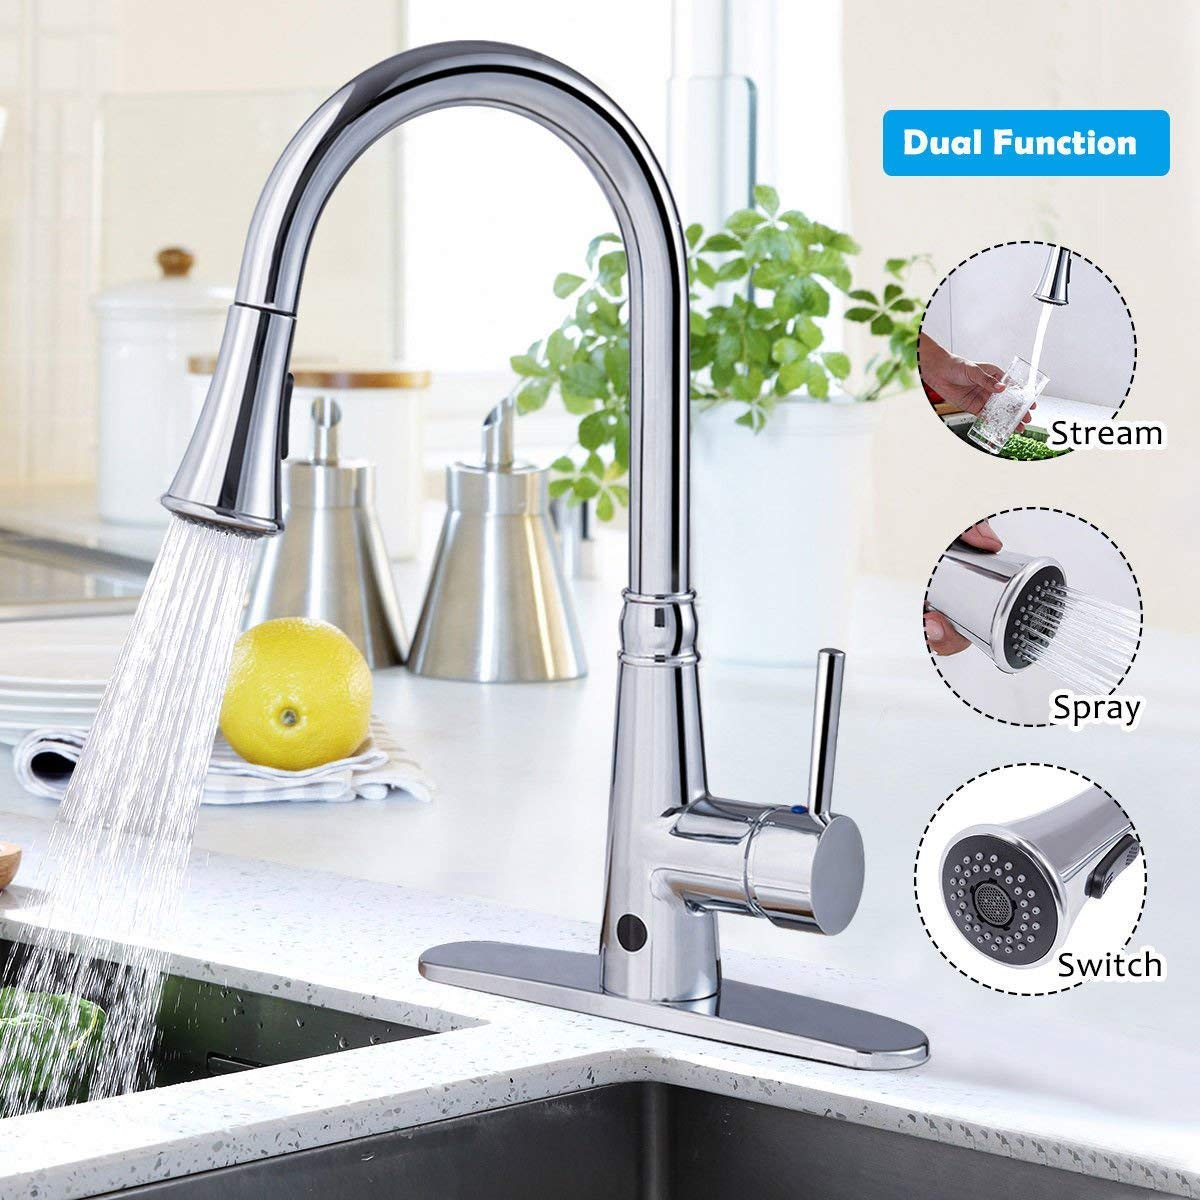 Giantex Motionsense Touchless Single-Handle Pull-Down High Arc Rotatable Kitchen Faucet w/Dual Sprayer Hot Cold Water Mixer (Chrome) by Giantex (Image #2)